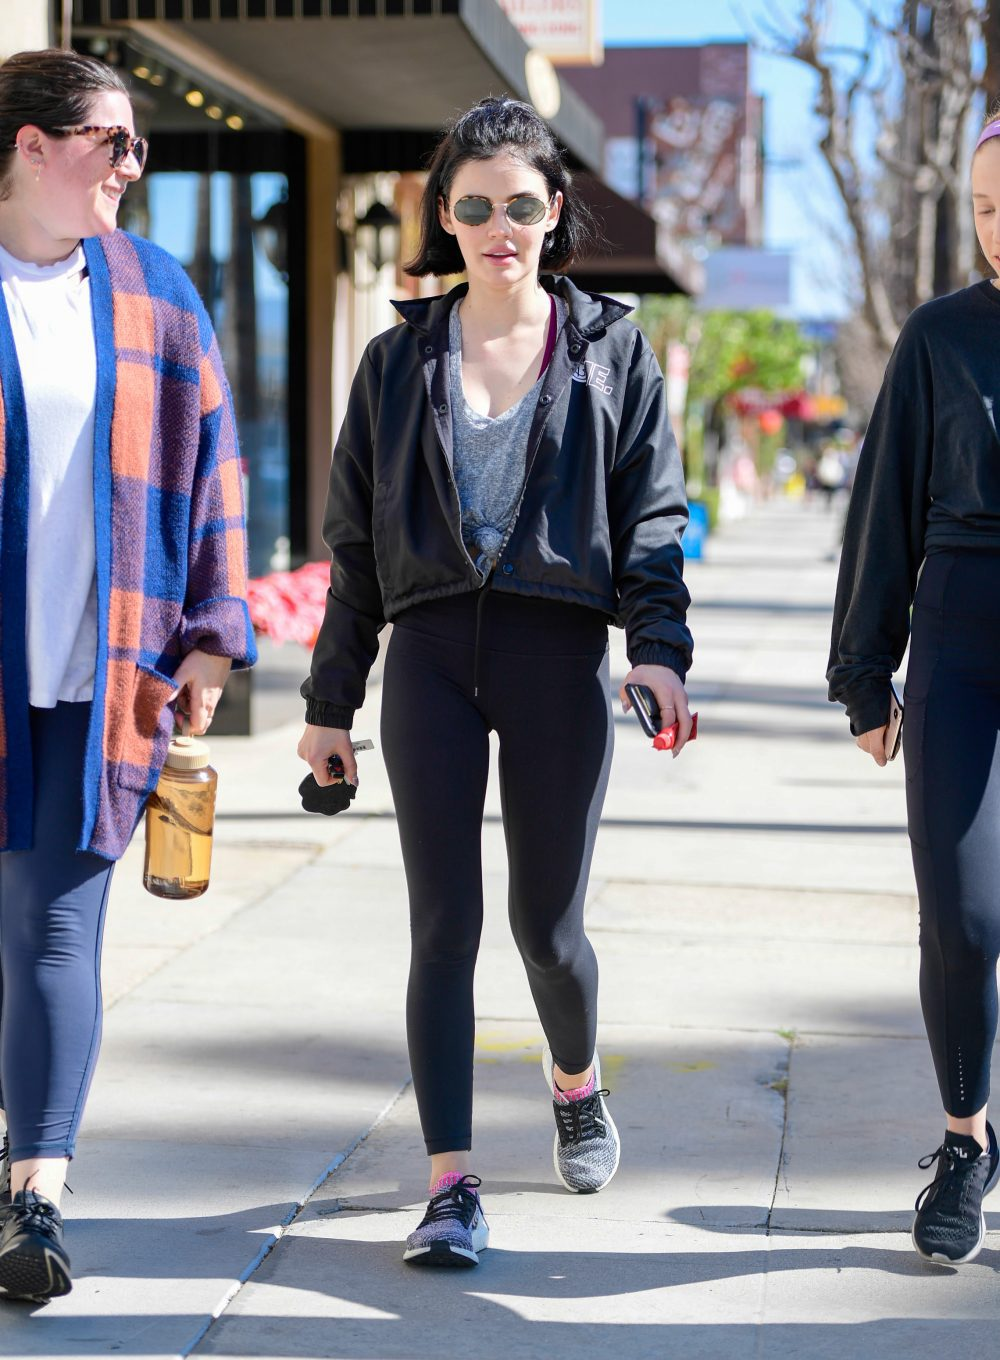 Lucy Hale is seen in Los Angeles, California.